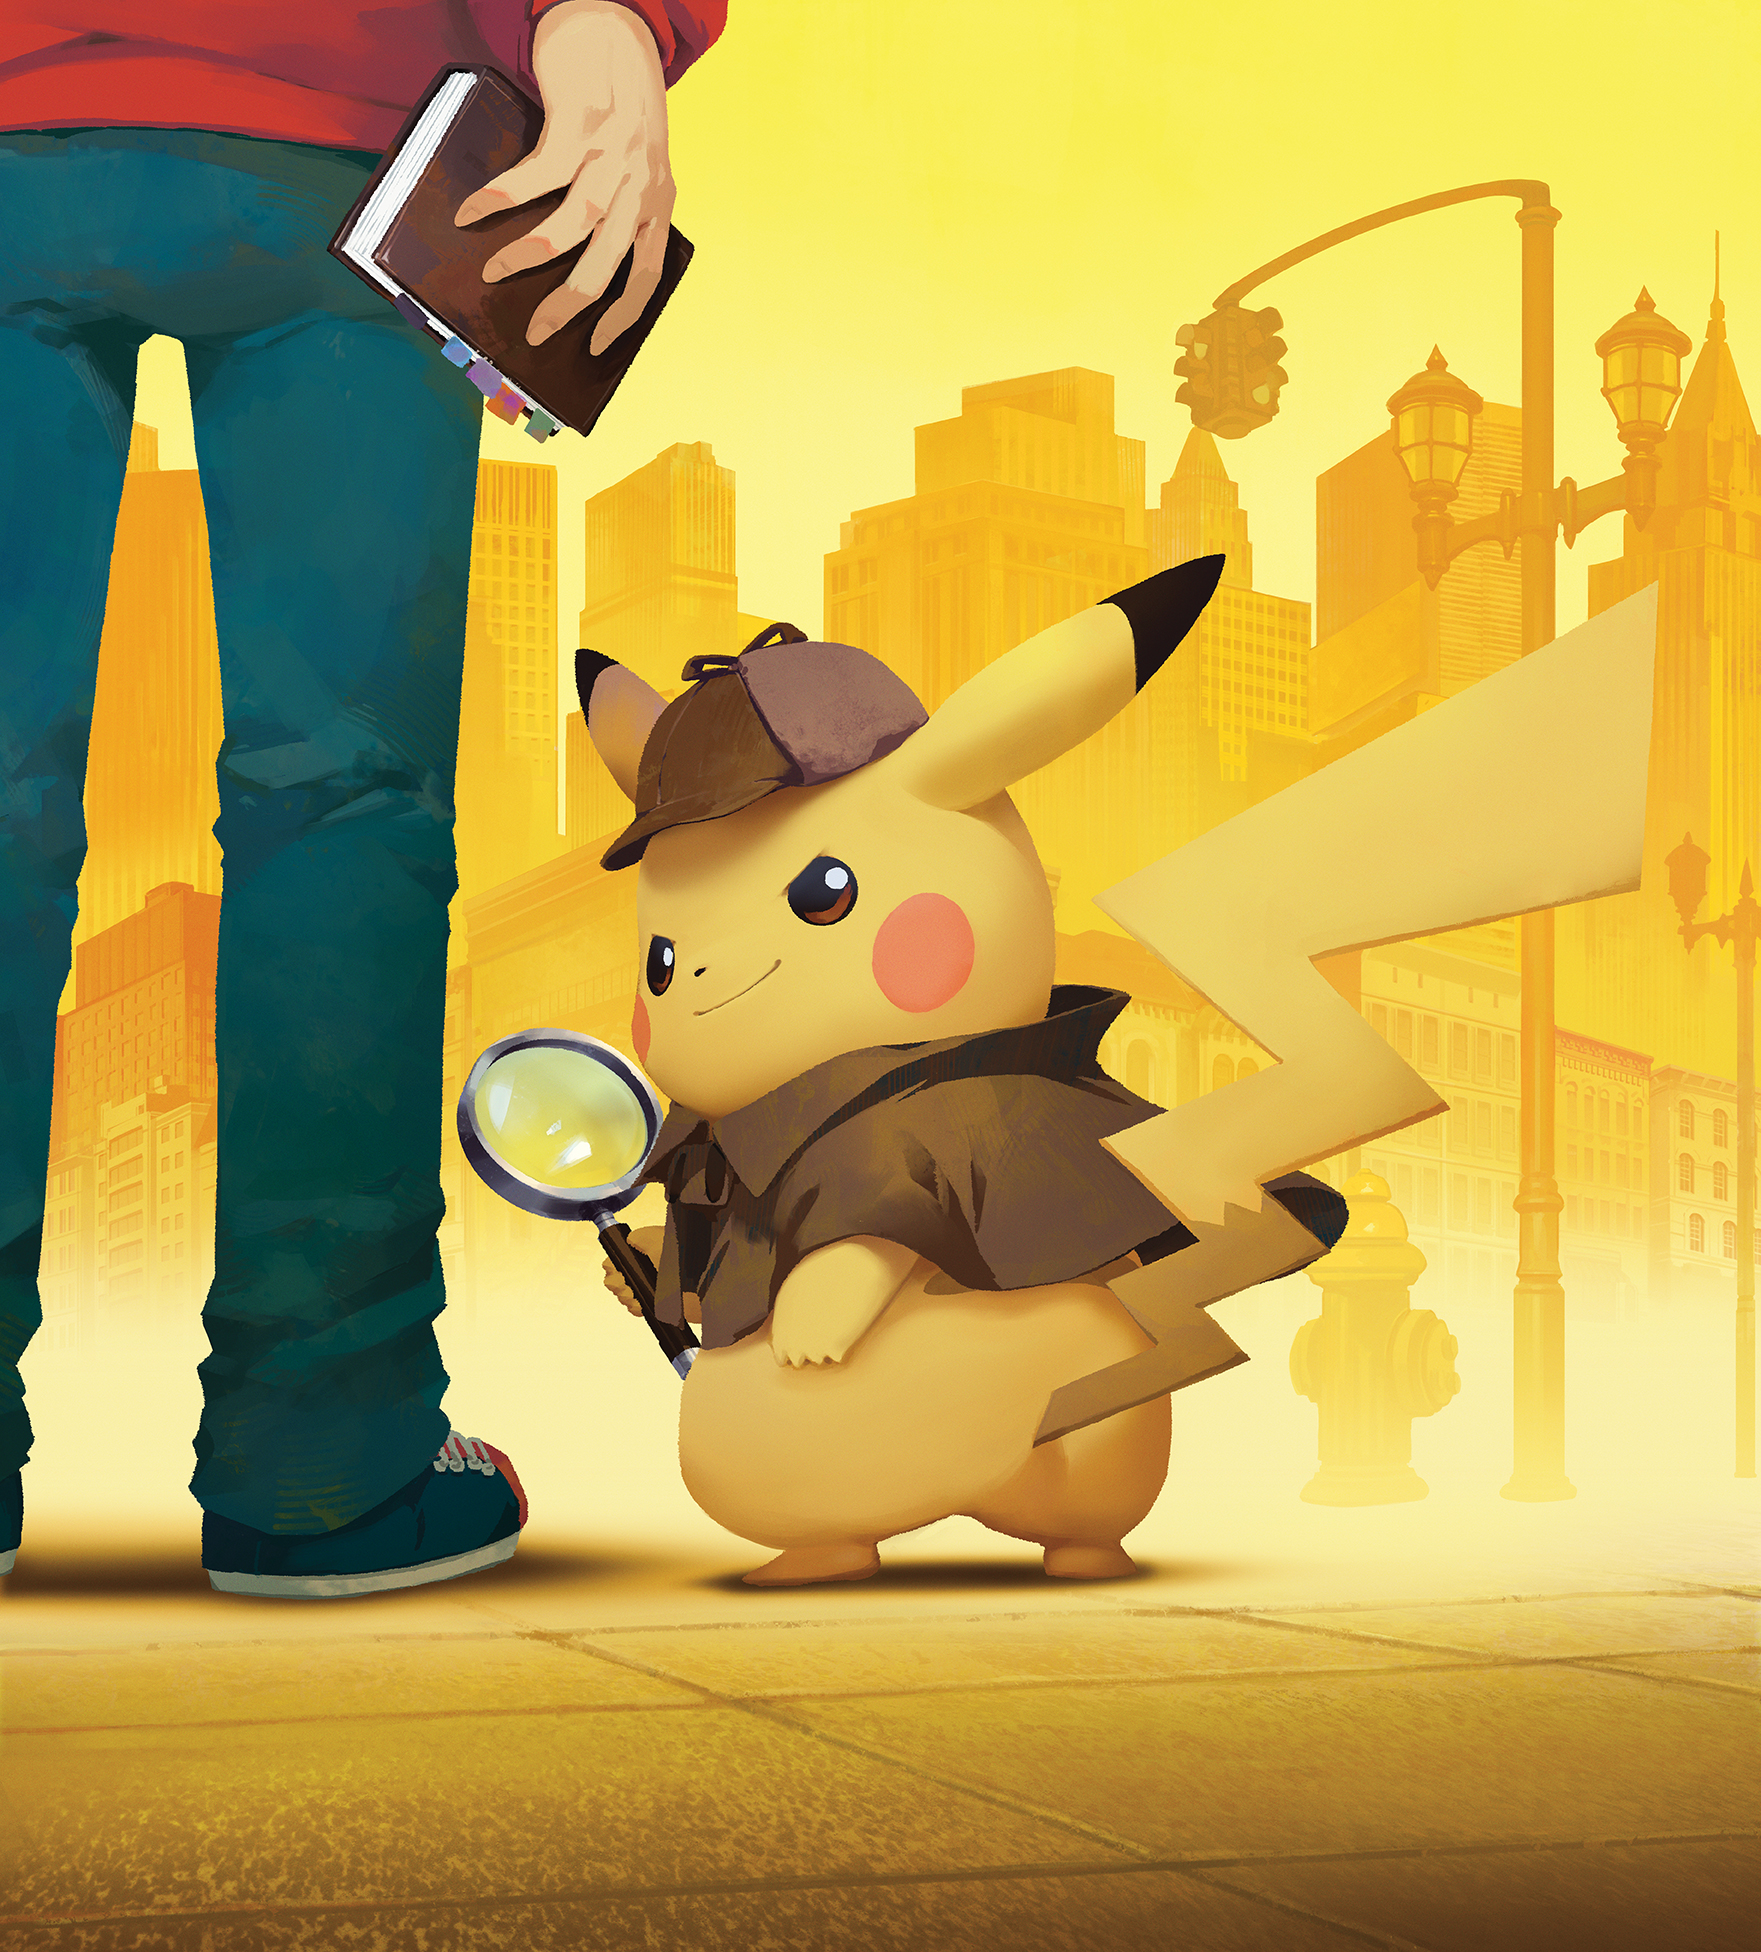 Detective Pikachu is the best Pokémon game in years